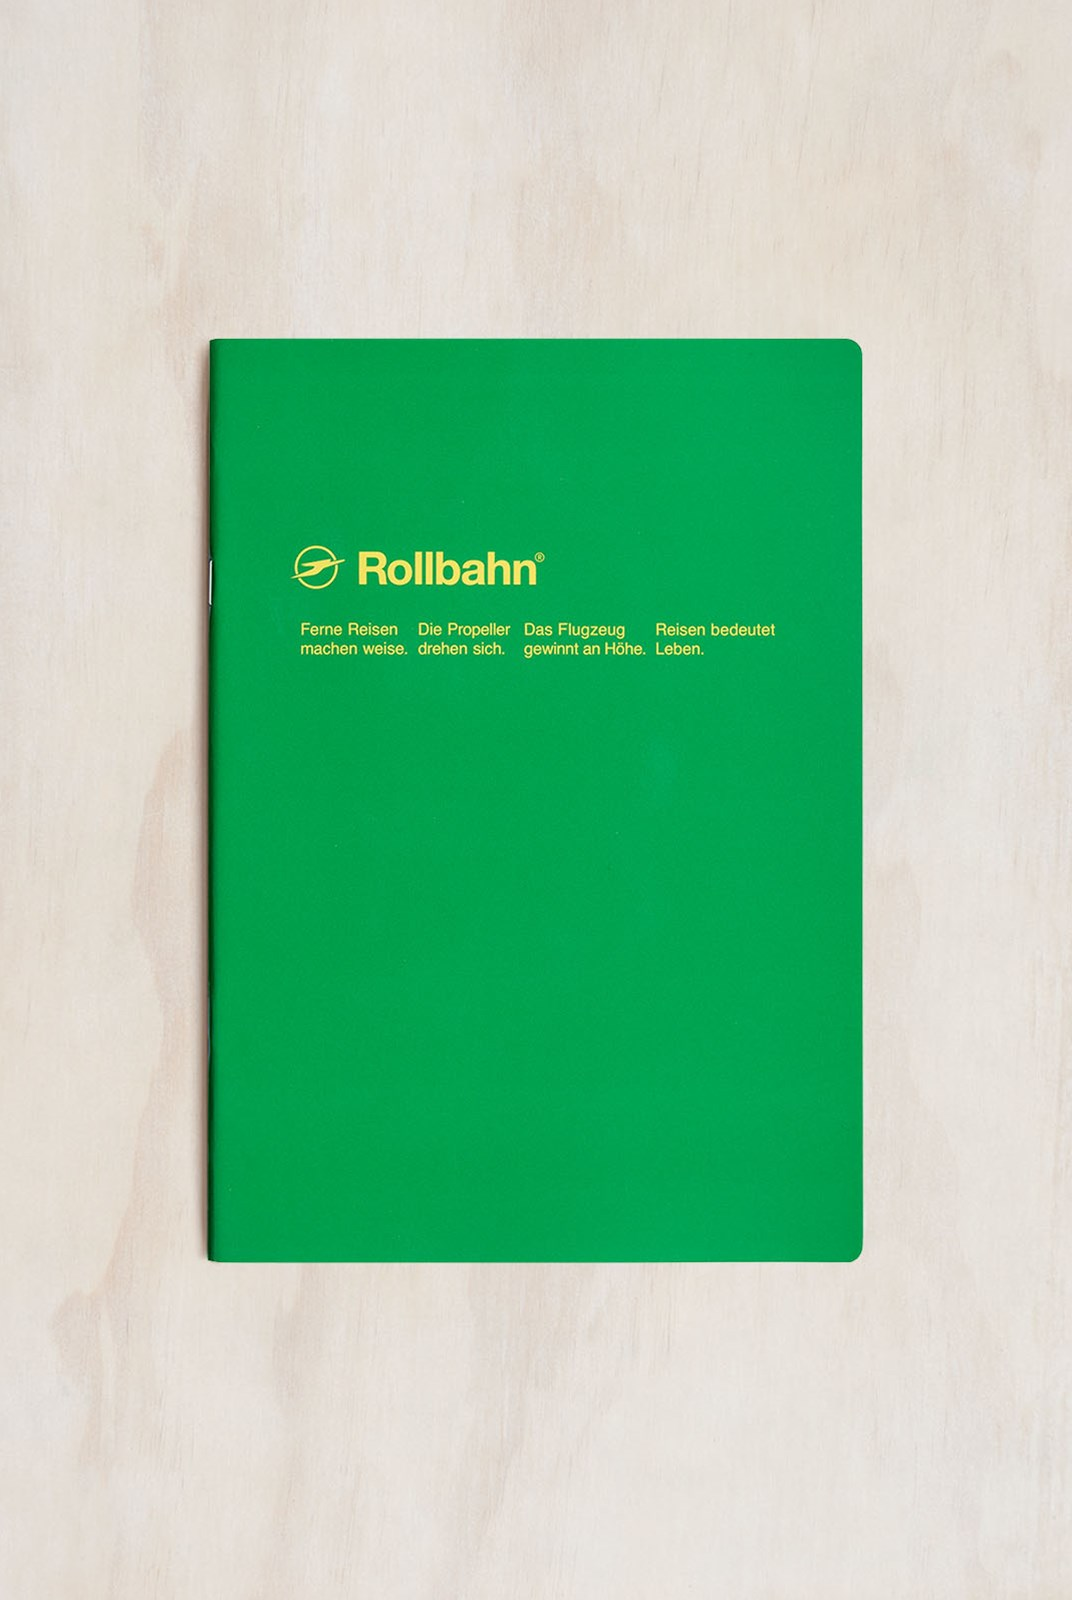 Delfonics - Rollbahn Slim Notebook - Grid - B5 - Green